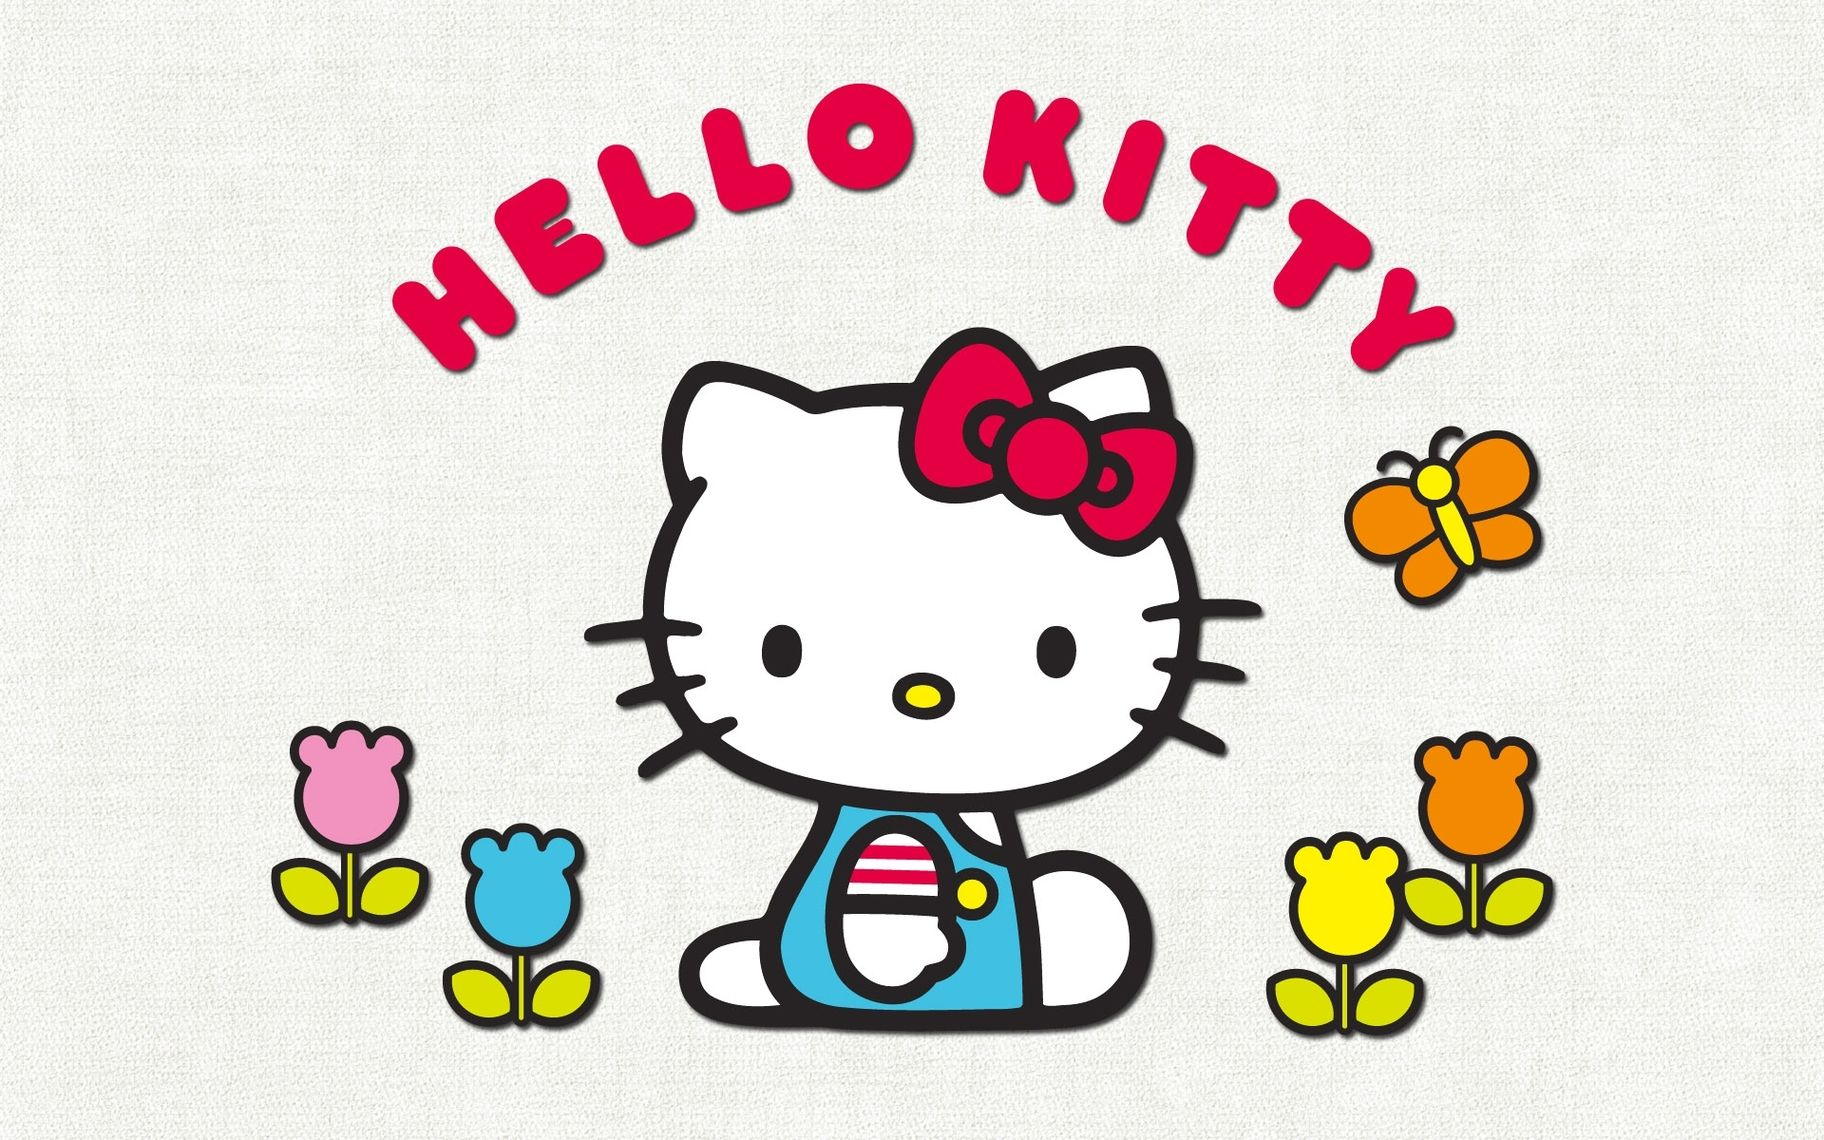 Simple Wallpaper Hello Kitty 1080p - 660135a784aaa25ba8c4e7c051927fee  Trends_47388.jpg